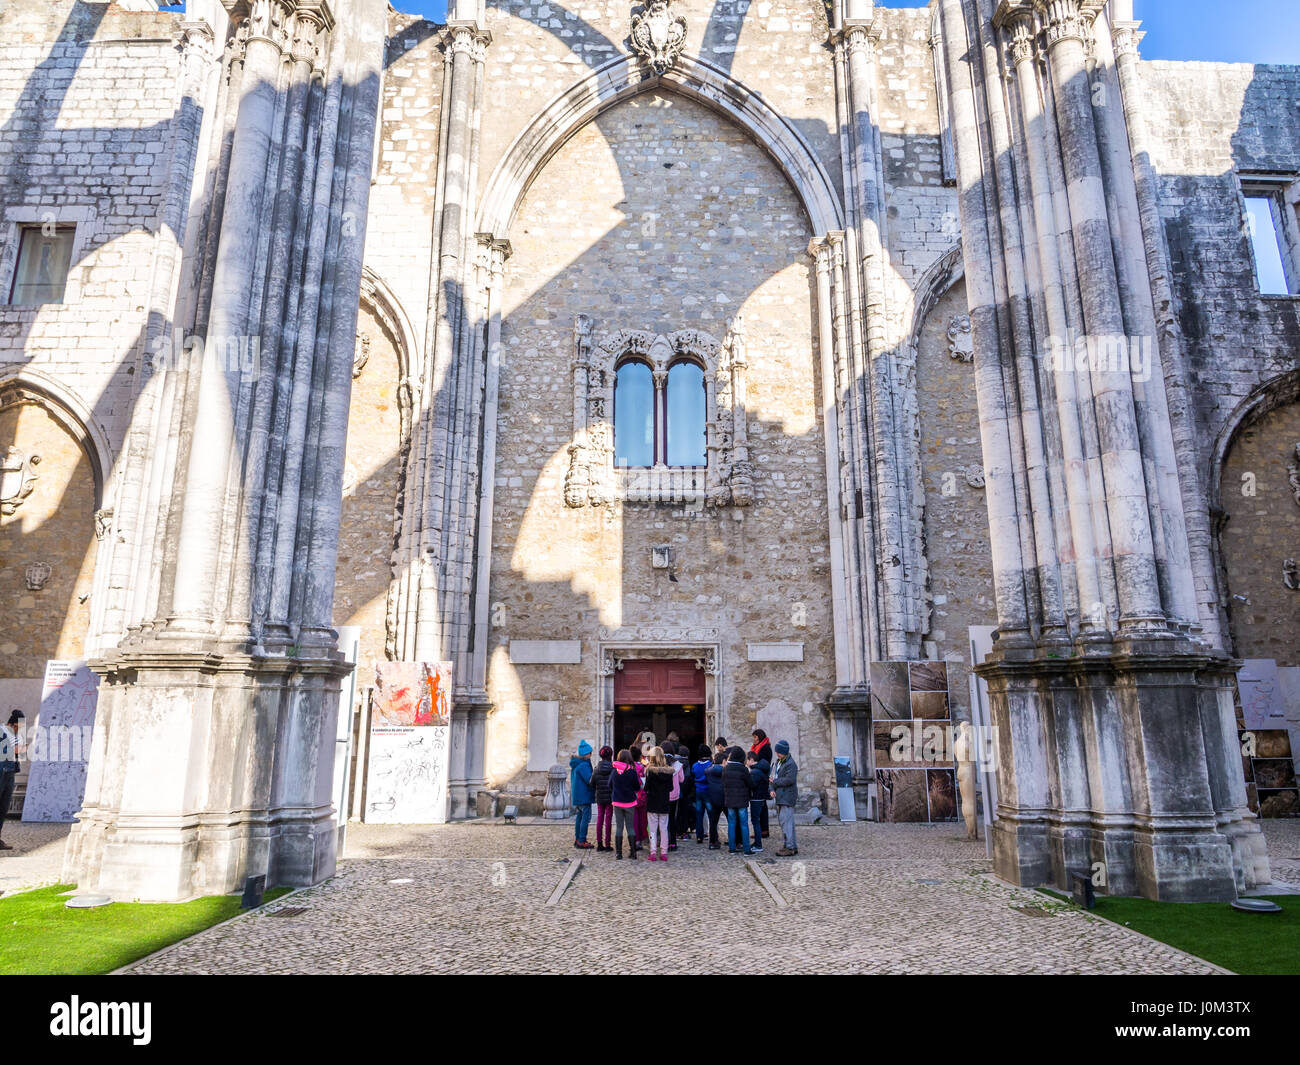 LISBON, PORTUGAL - JANUARY 19, 2017: Convent of Our Lady of Mount Carmel (Portuguese: Convento da Ordem do Carmo) - Stock Image